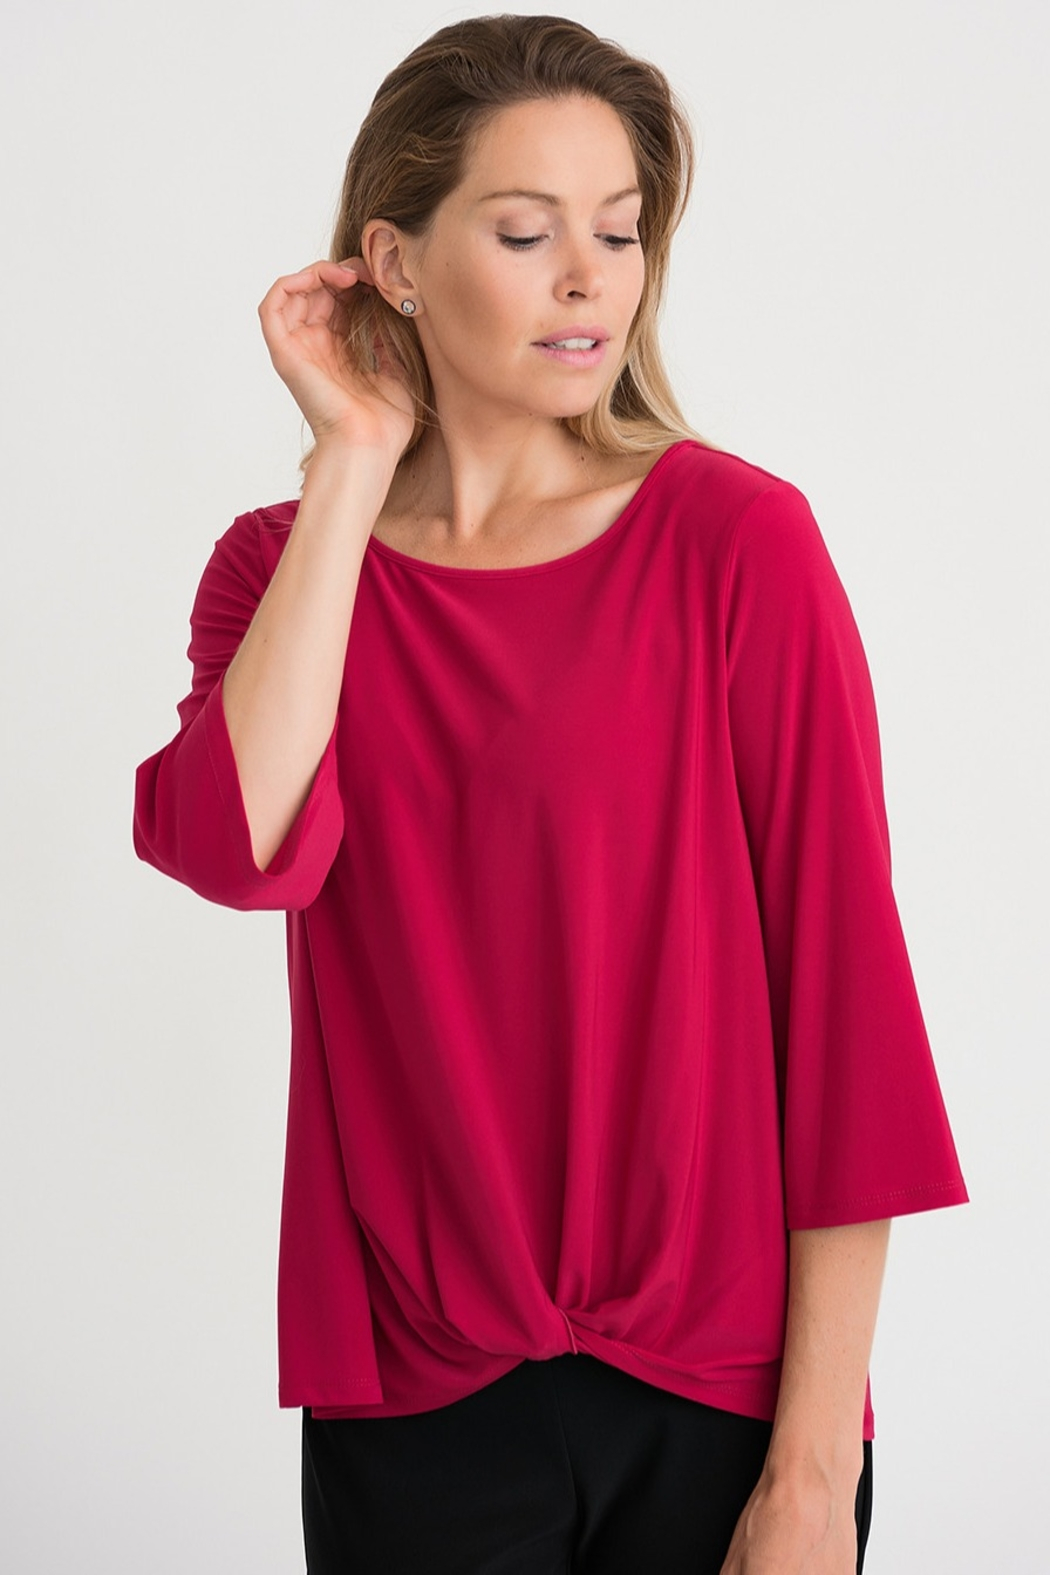 Joseph Ribikoff Cerise top with soft tie knot - Main Image